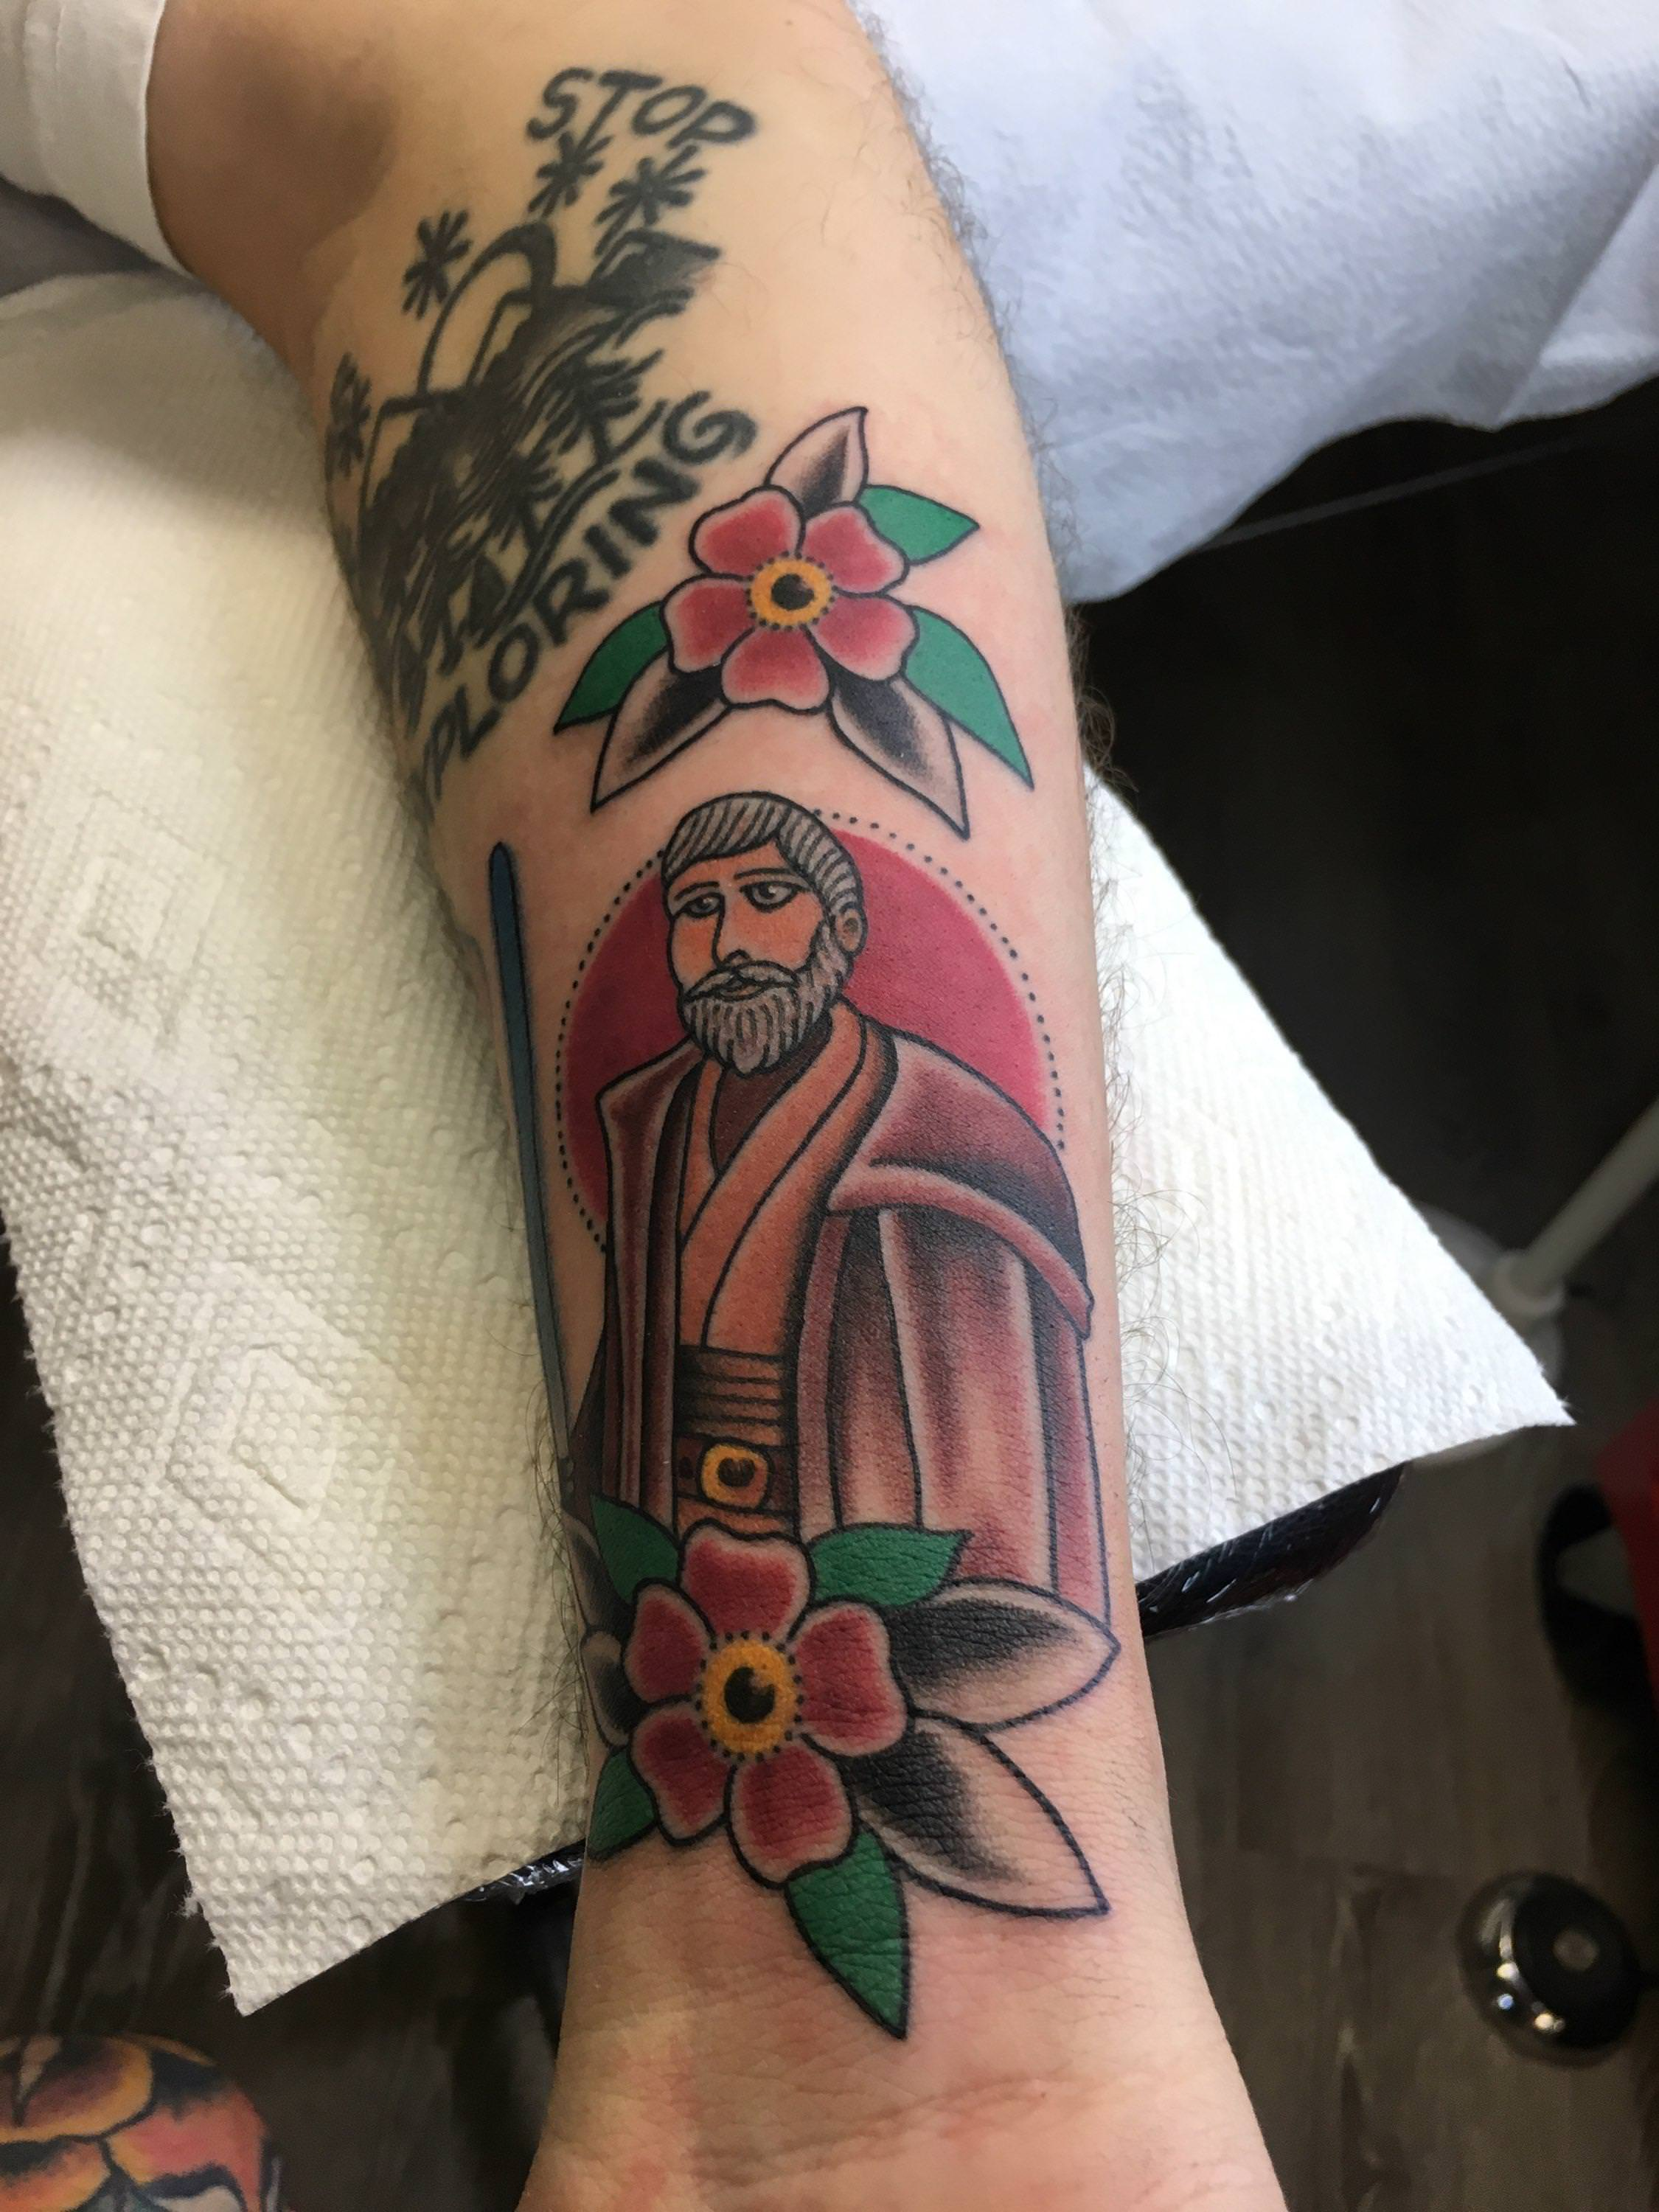 An elegant tattoo for a more civilized age.